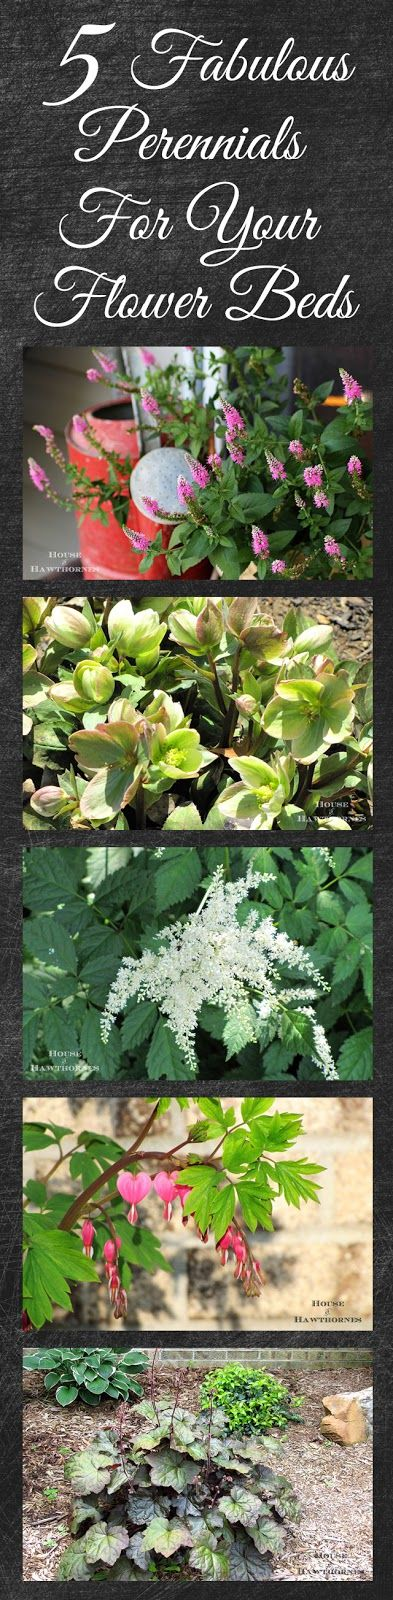 Great perennials to use in your flower beds this year that go beyond the run of the mill